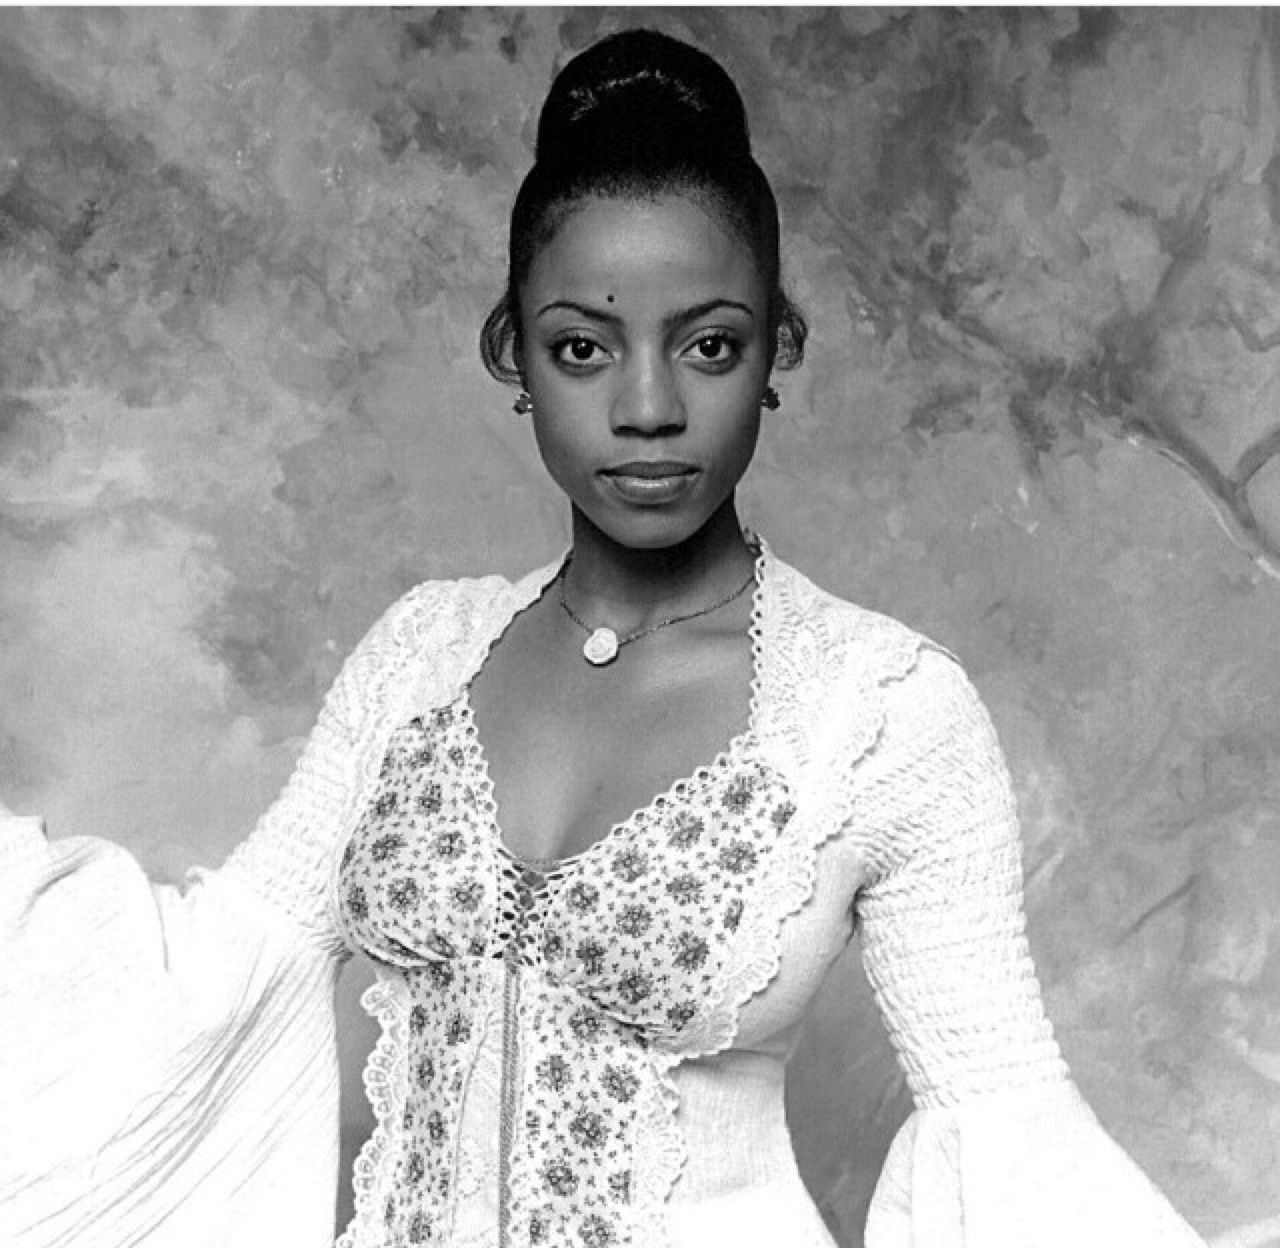 Panties Bern Nadette Stanis nudes (54 pictures) Young, YouTube, legs